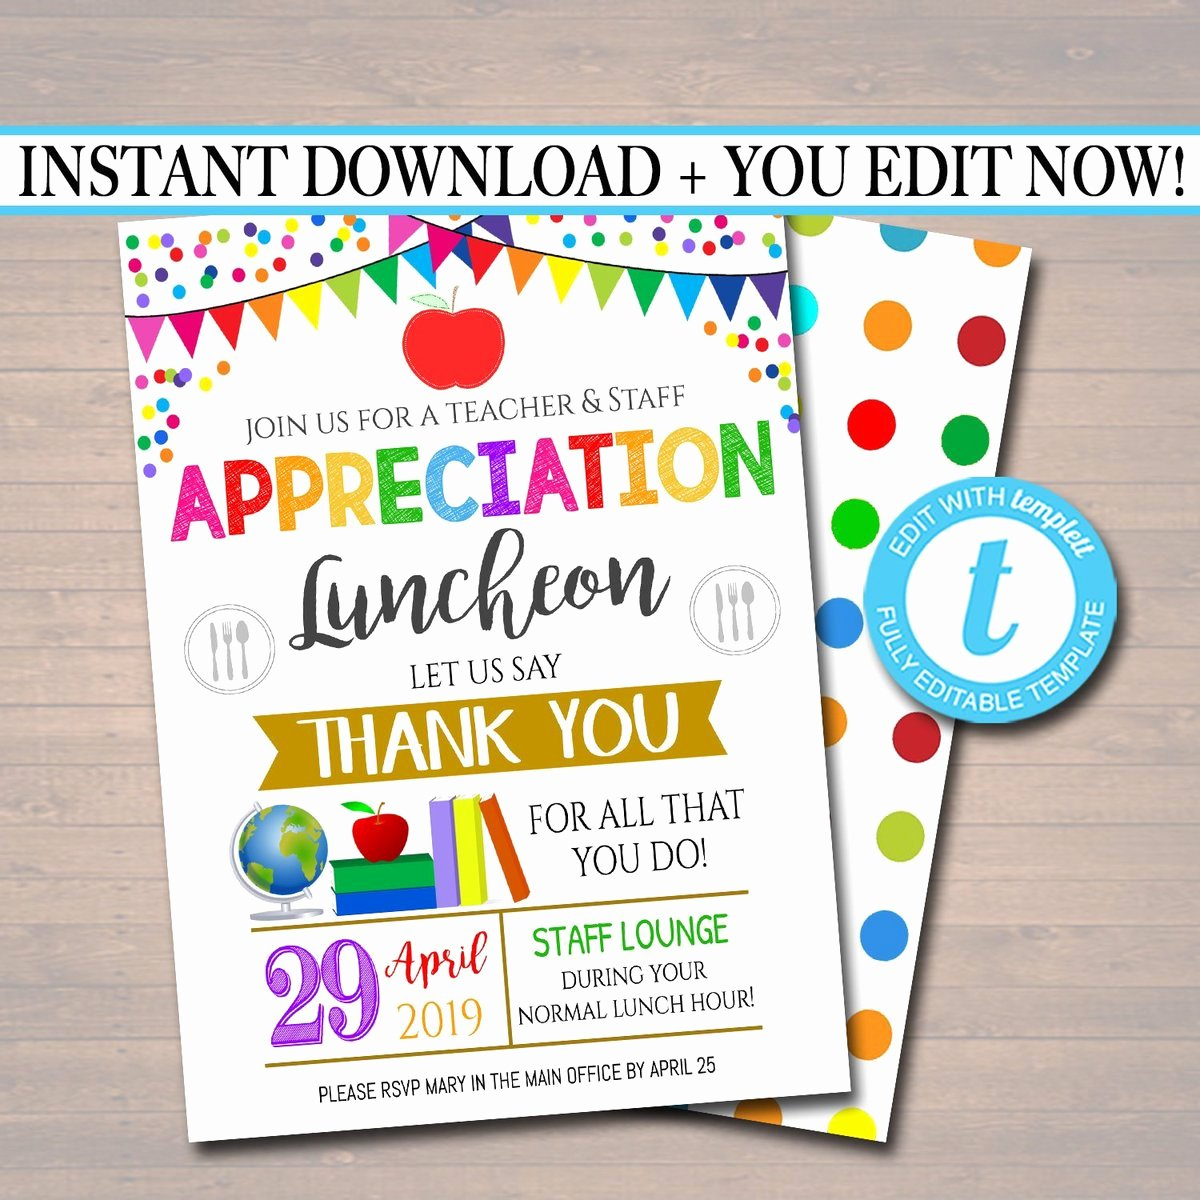 Thank You Lunch Invitation New Editable Teacher Appreciation Staff Invitation Thank You